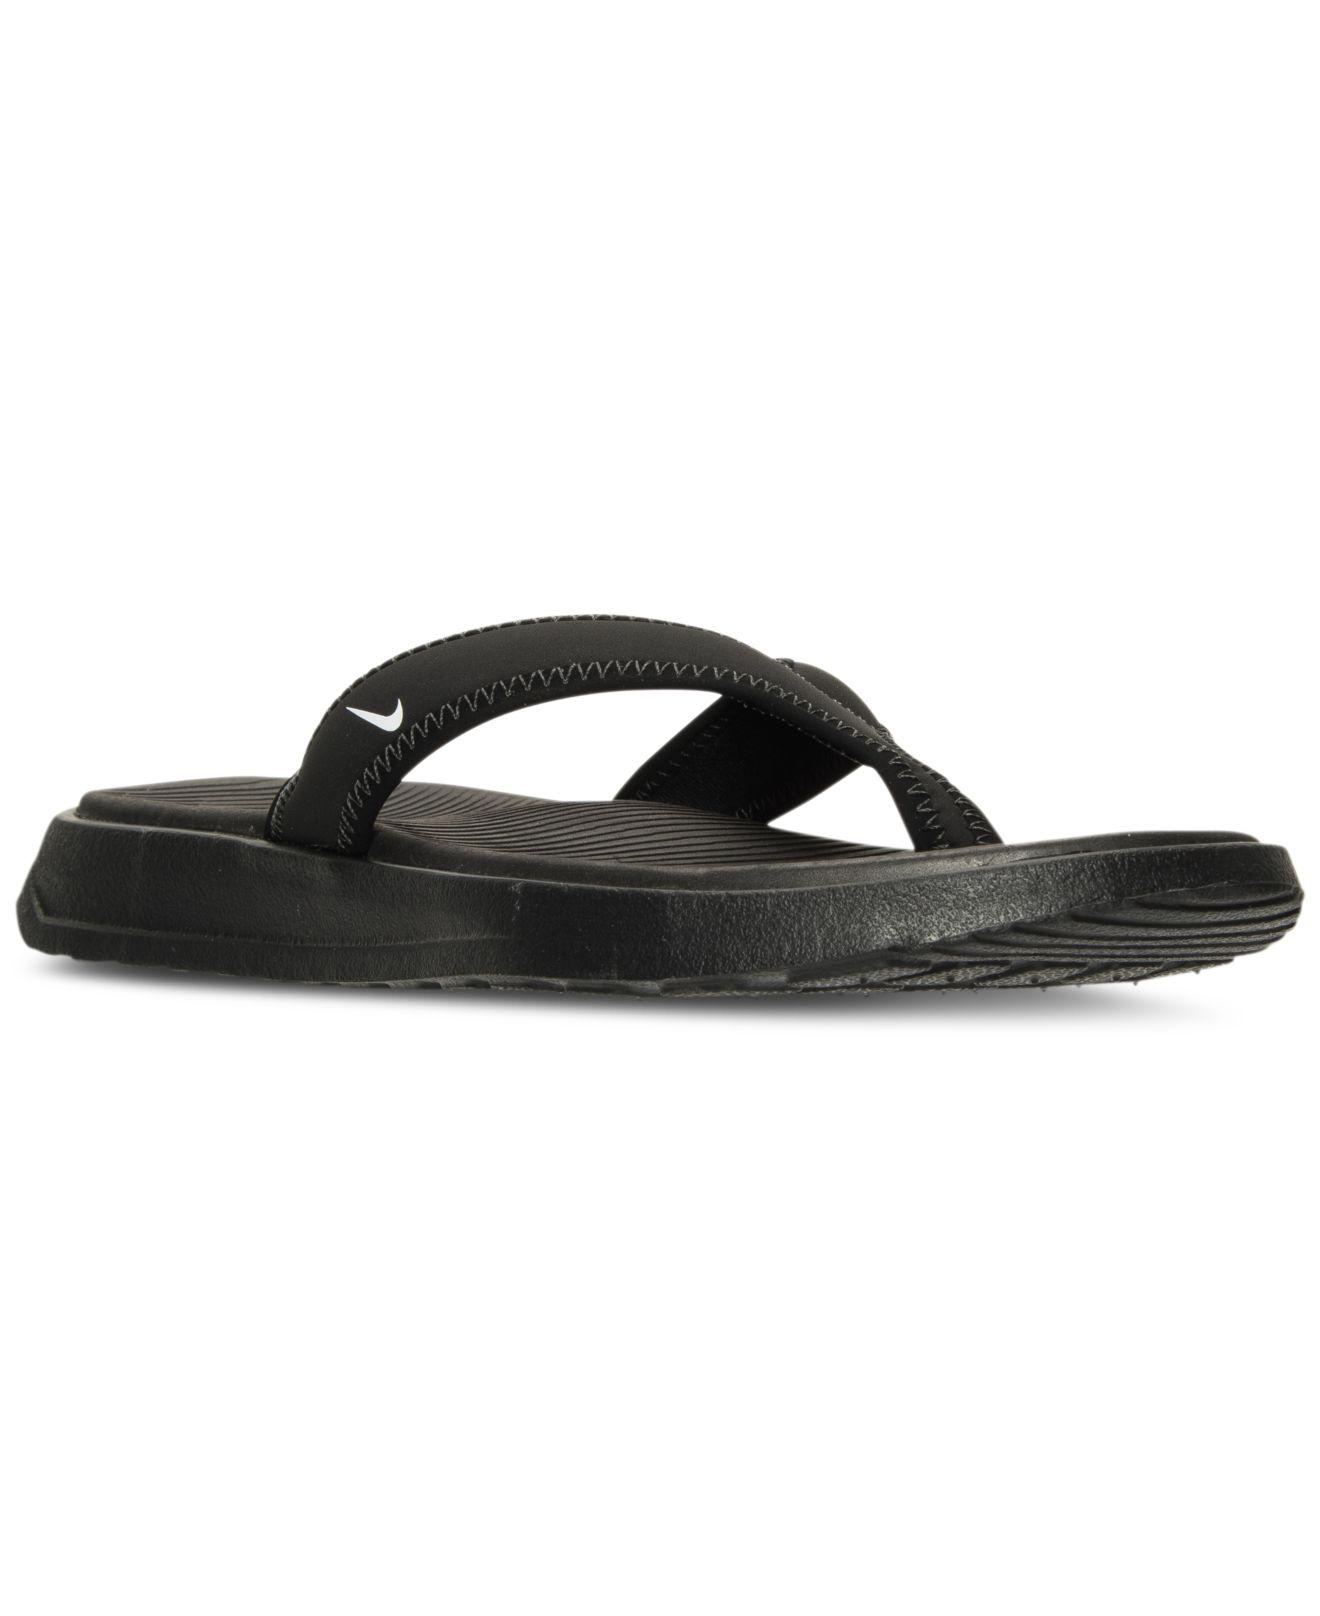 Lyst - Nike Men s Ultra Celso Thong Sandals From Finish Line in ... d79d6a13c